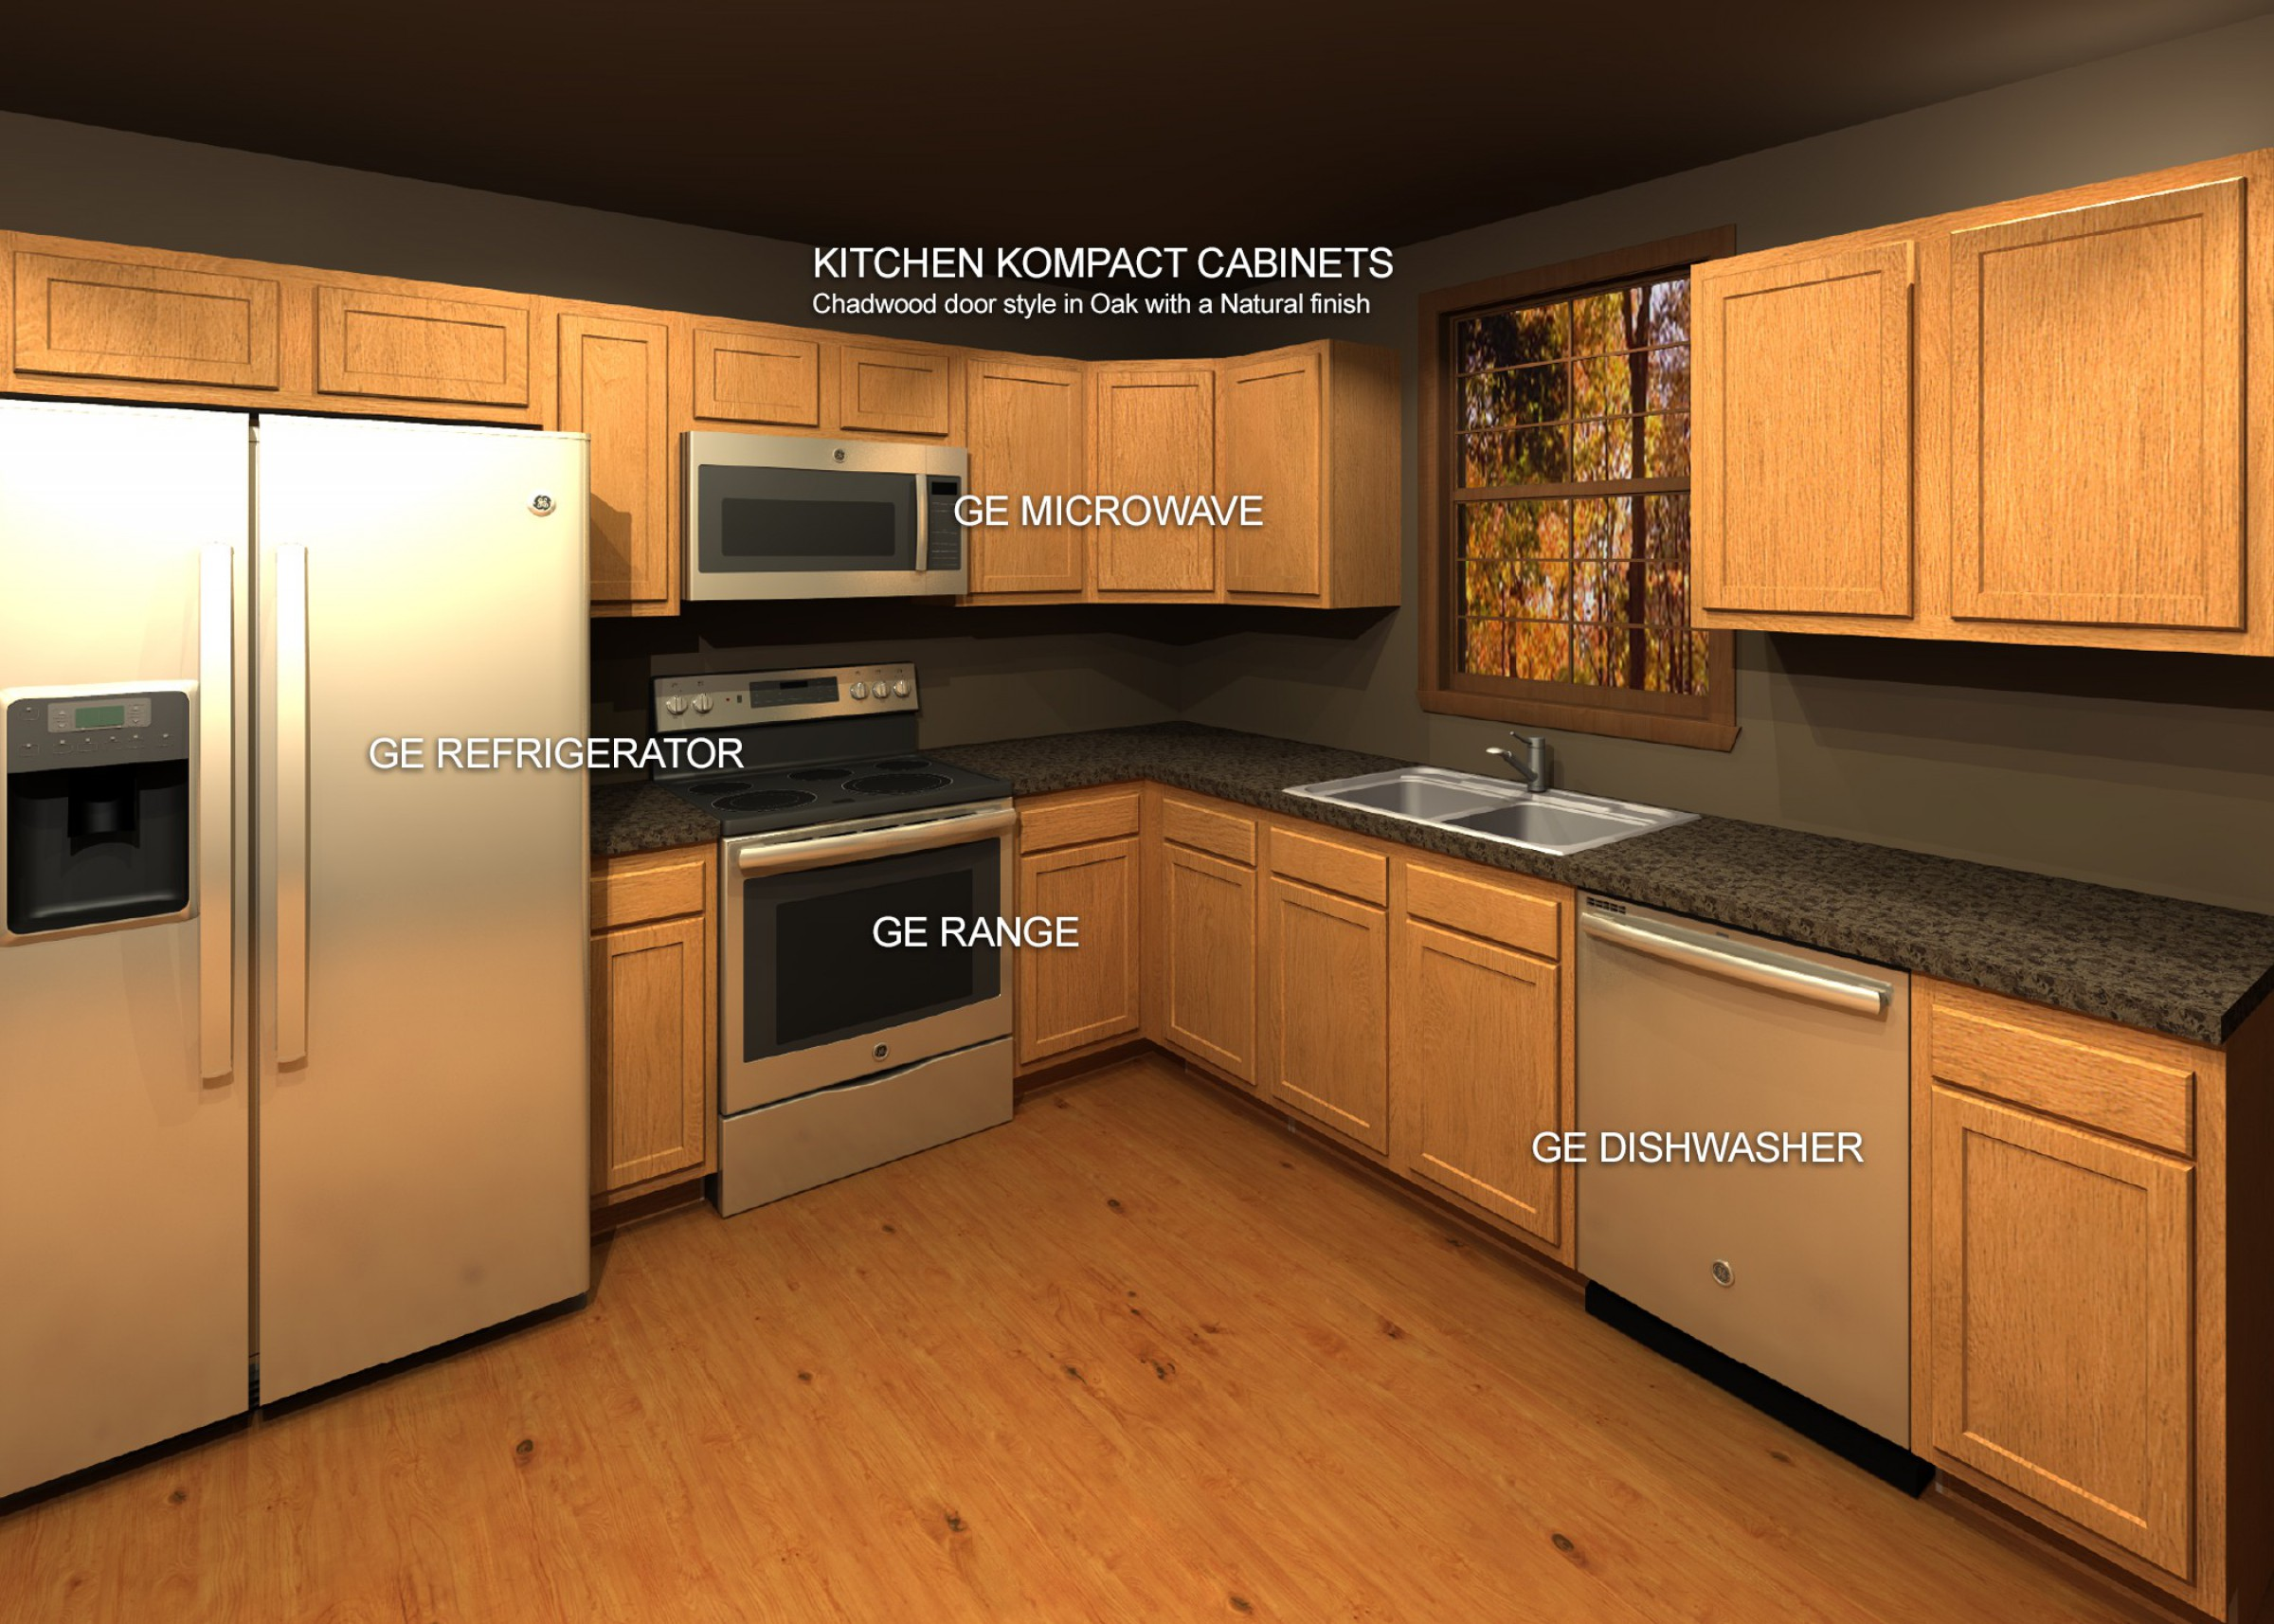 Kitchen Kompact Cabinets with GE Quick Kitchen Appliance ...